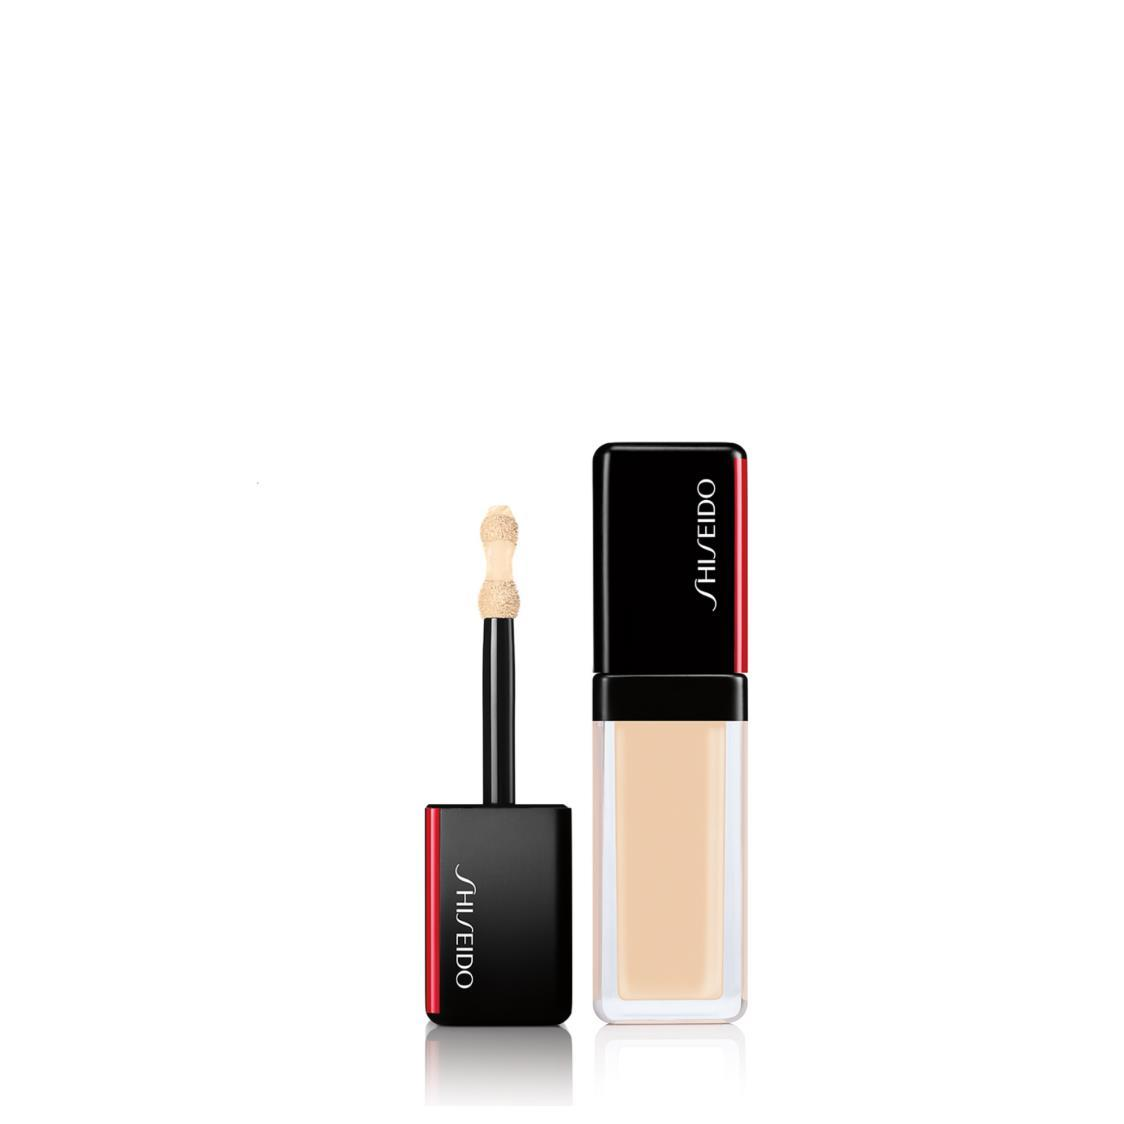 Shiseido Synchro Skin Self-Refreshing Concealer 102 Fair